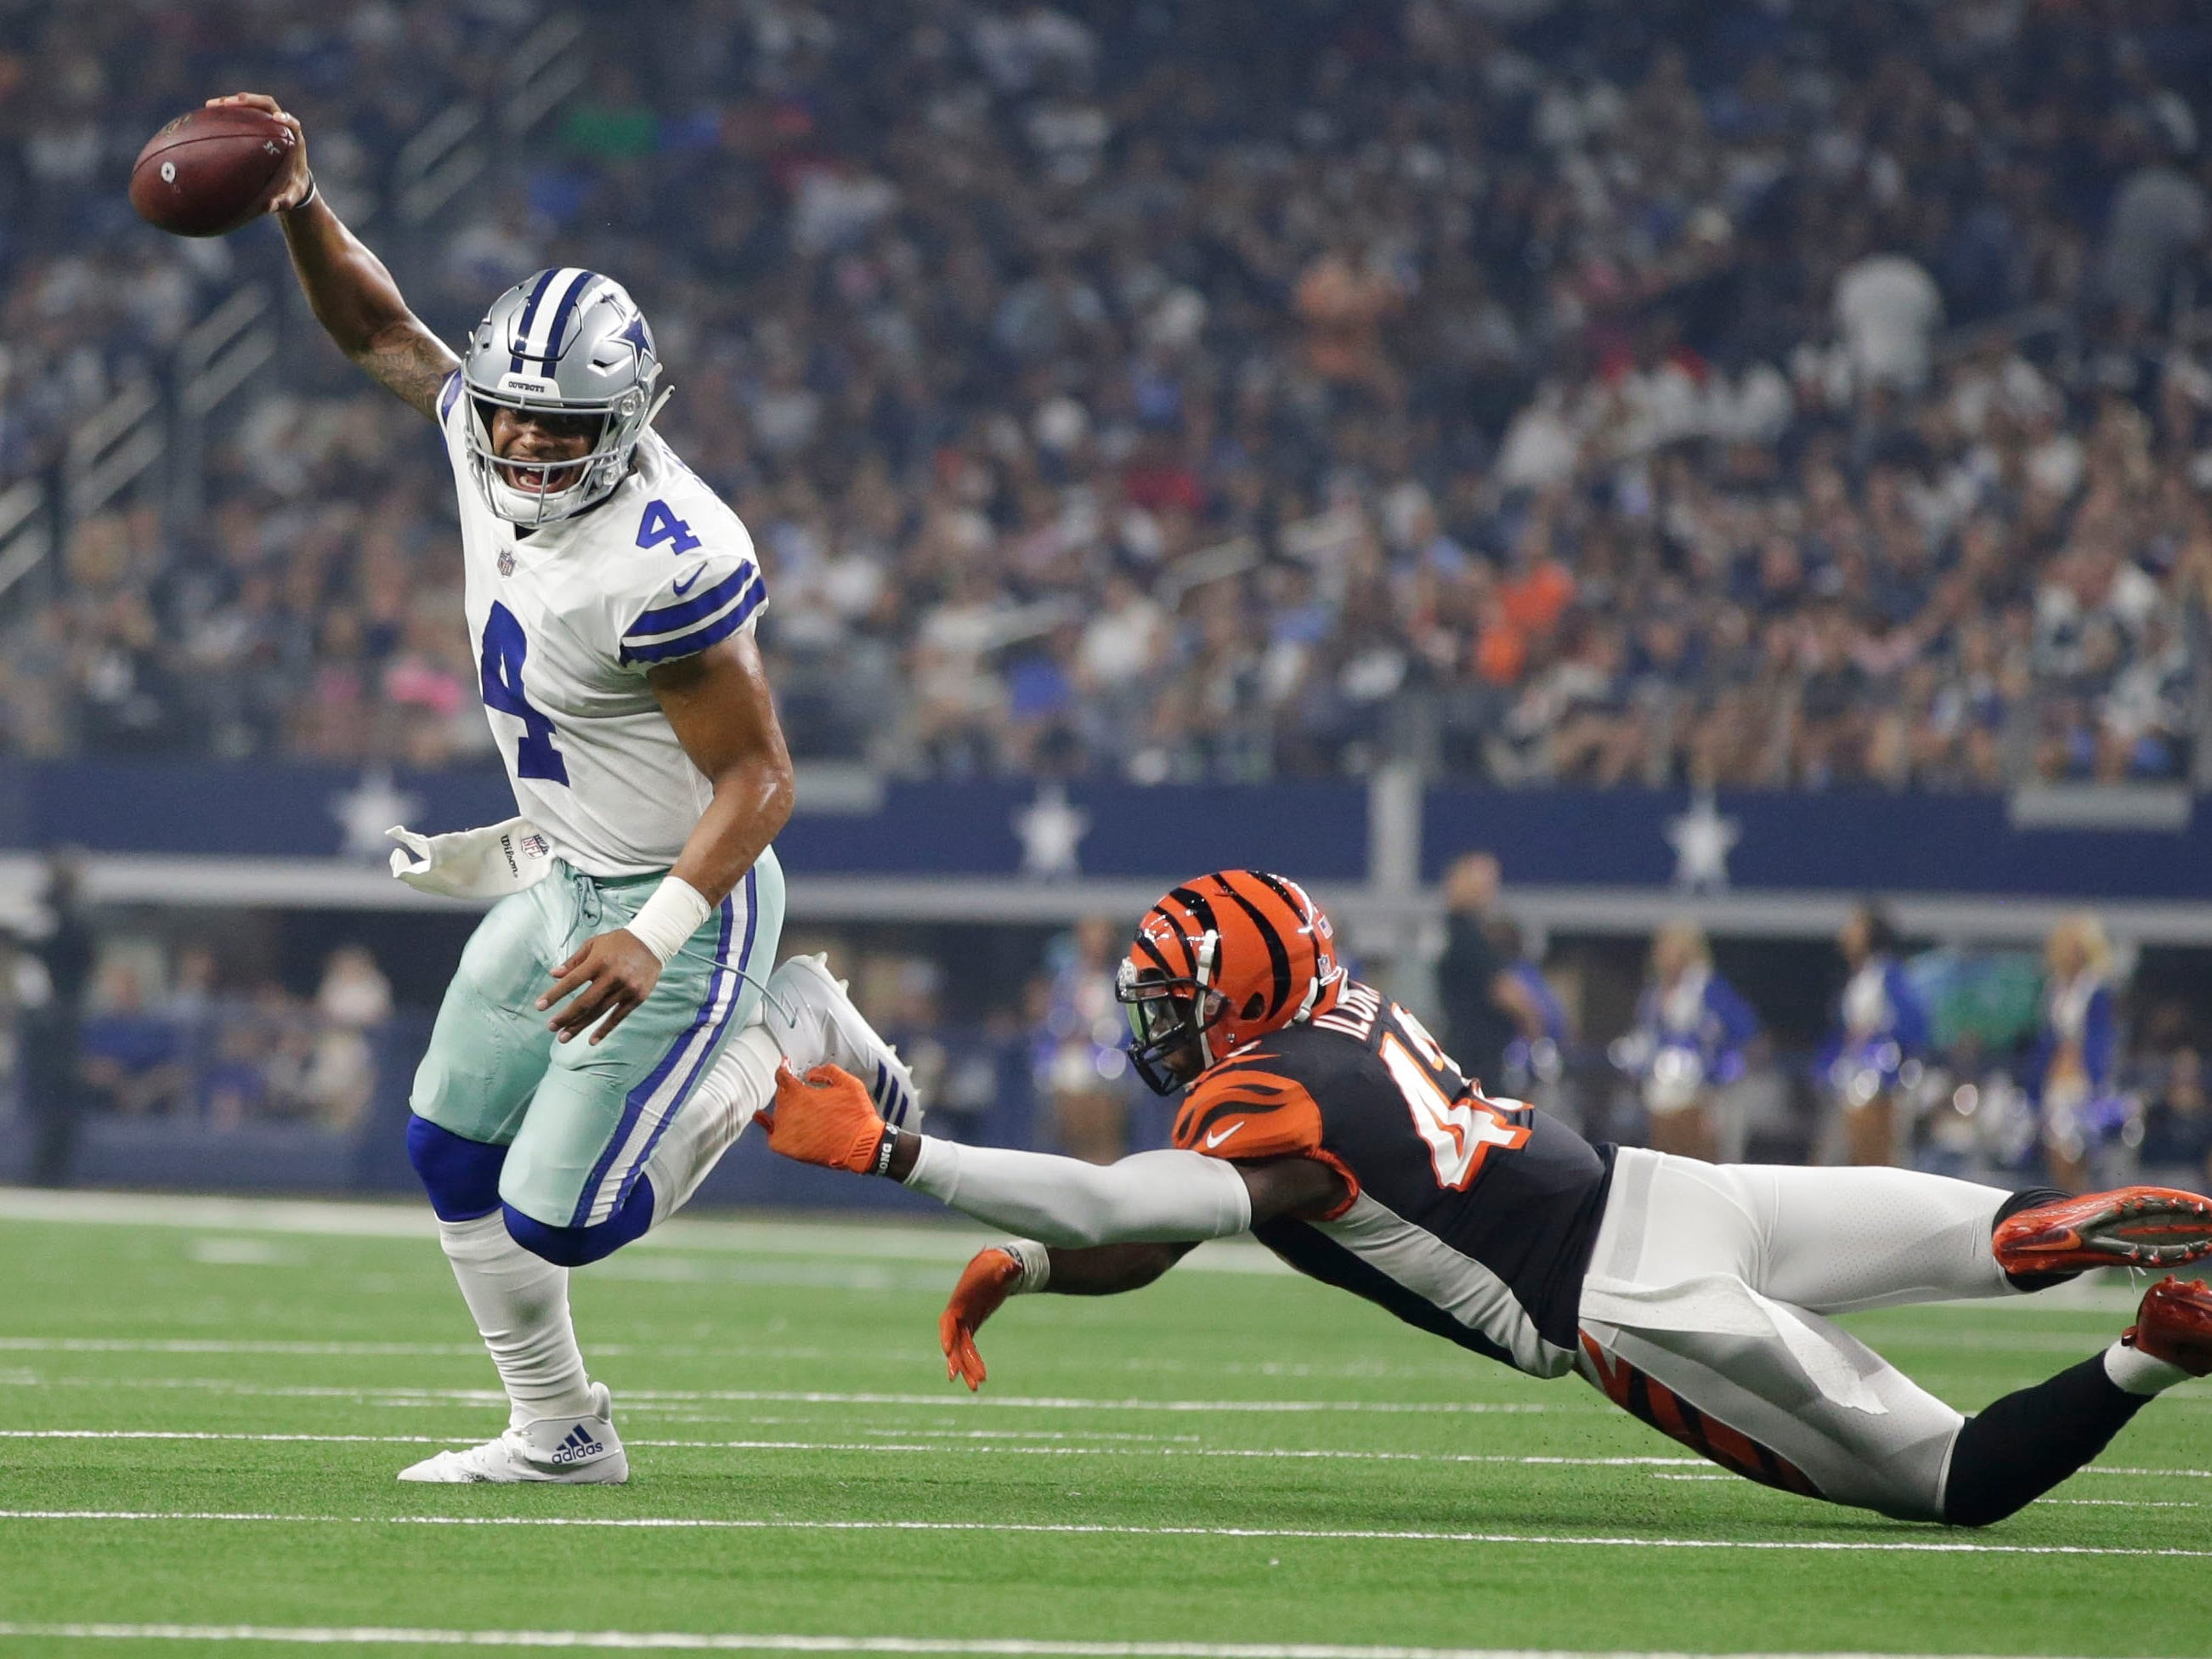 Cowboys quarterback Dak Prescott (4) eludes Bengals defensive back George Iloka (43) during the second quarter.